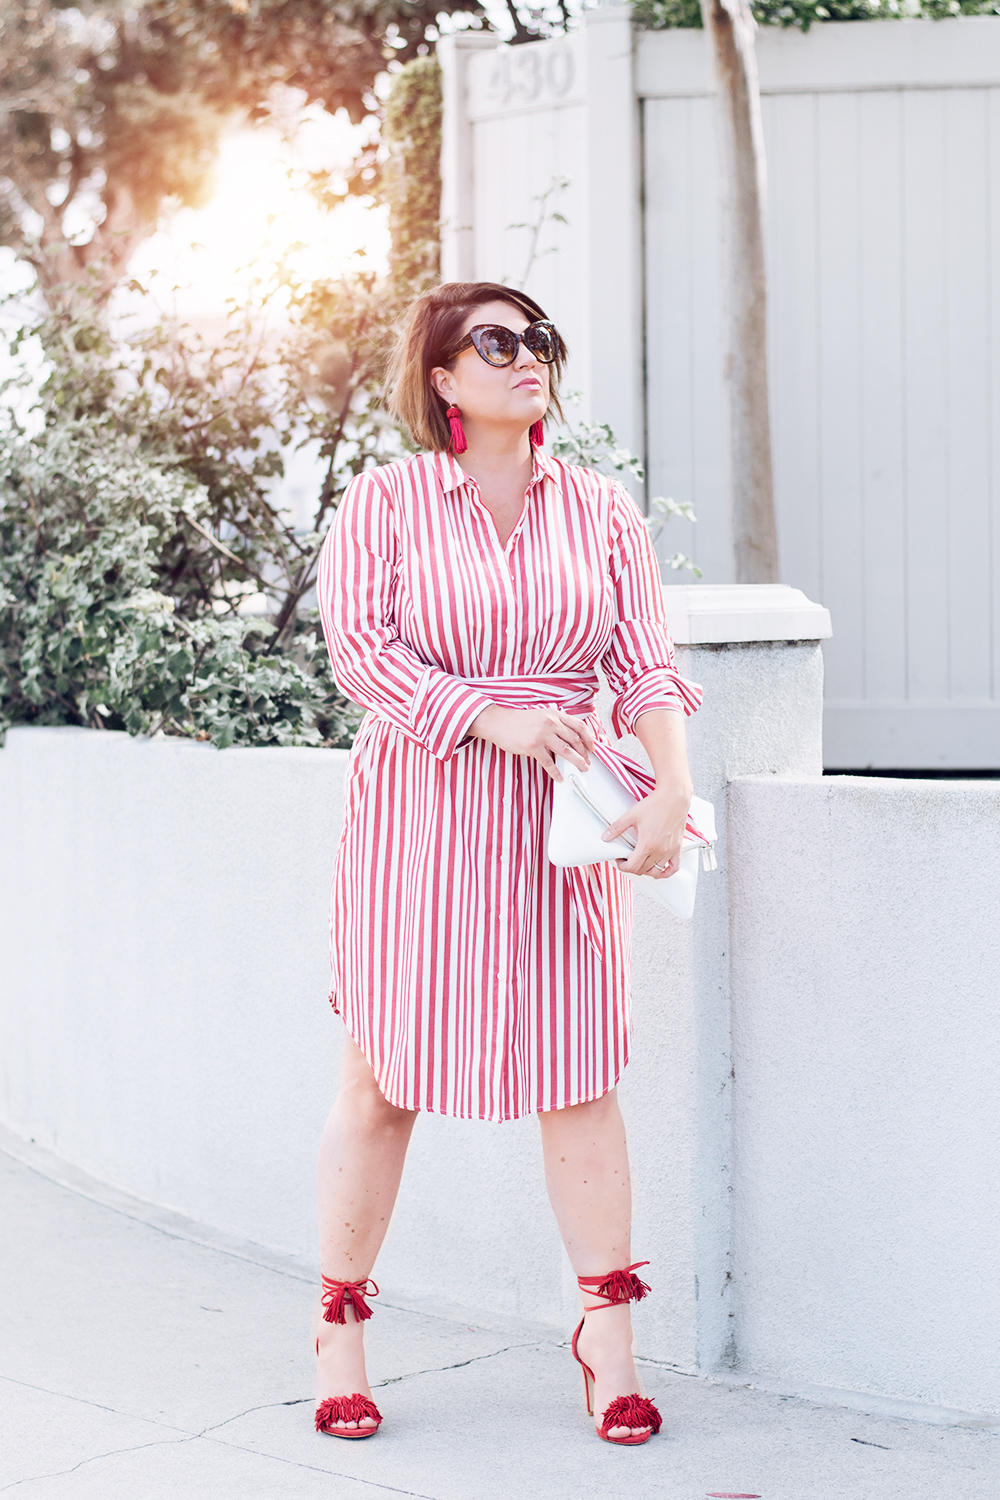 Red Stripes for Summer Striped Red Dress Who What Wear Street Style Looks to Copy in 2018 Barefoot in LA Fashion Blog Style Ideas Outfits0171